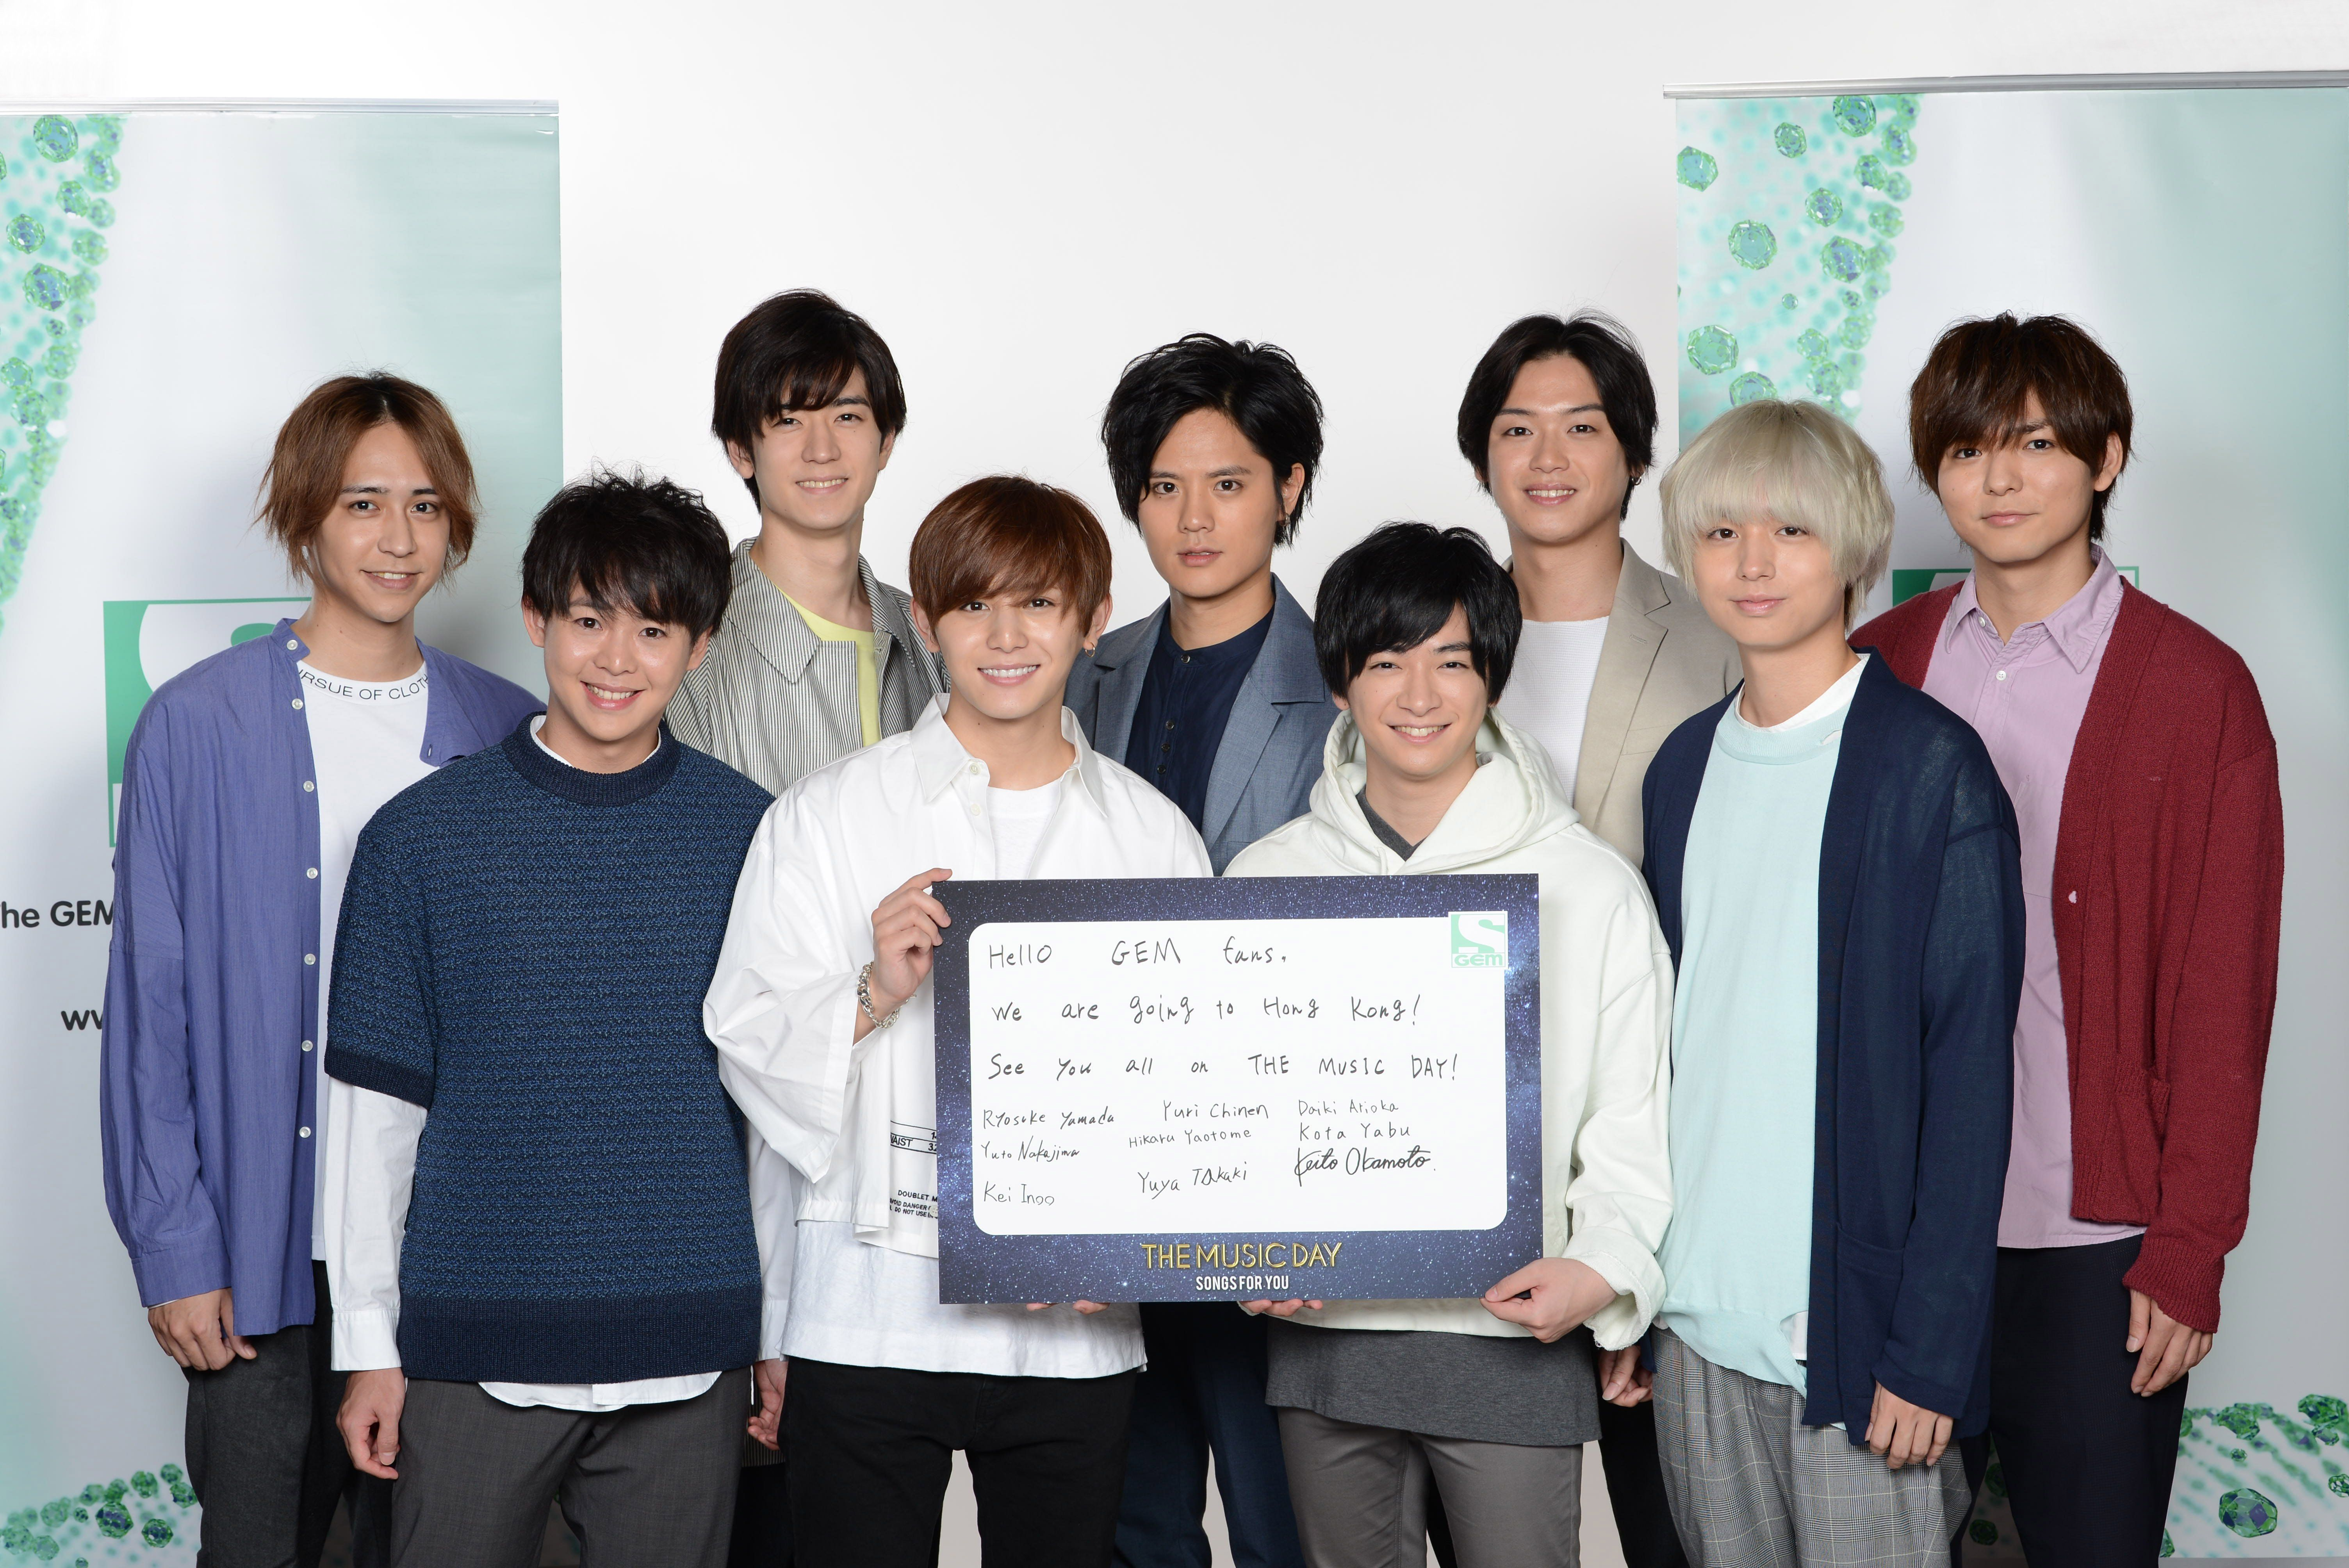 Gem Partners With Johnny Associates To Bring Hey Say Jump To The Music Day Songs For You In Hong Kong 画像あり 髙木雄也 岡本圭人